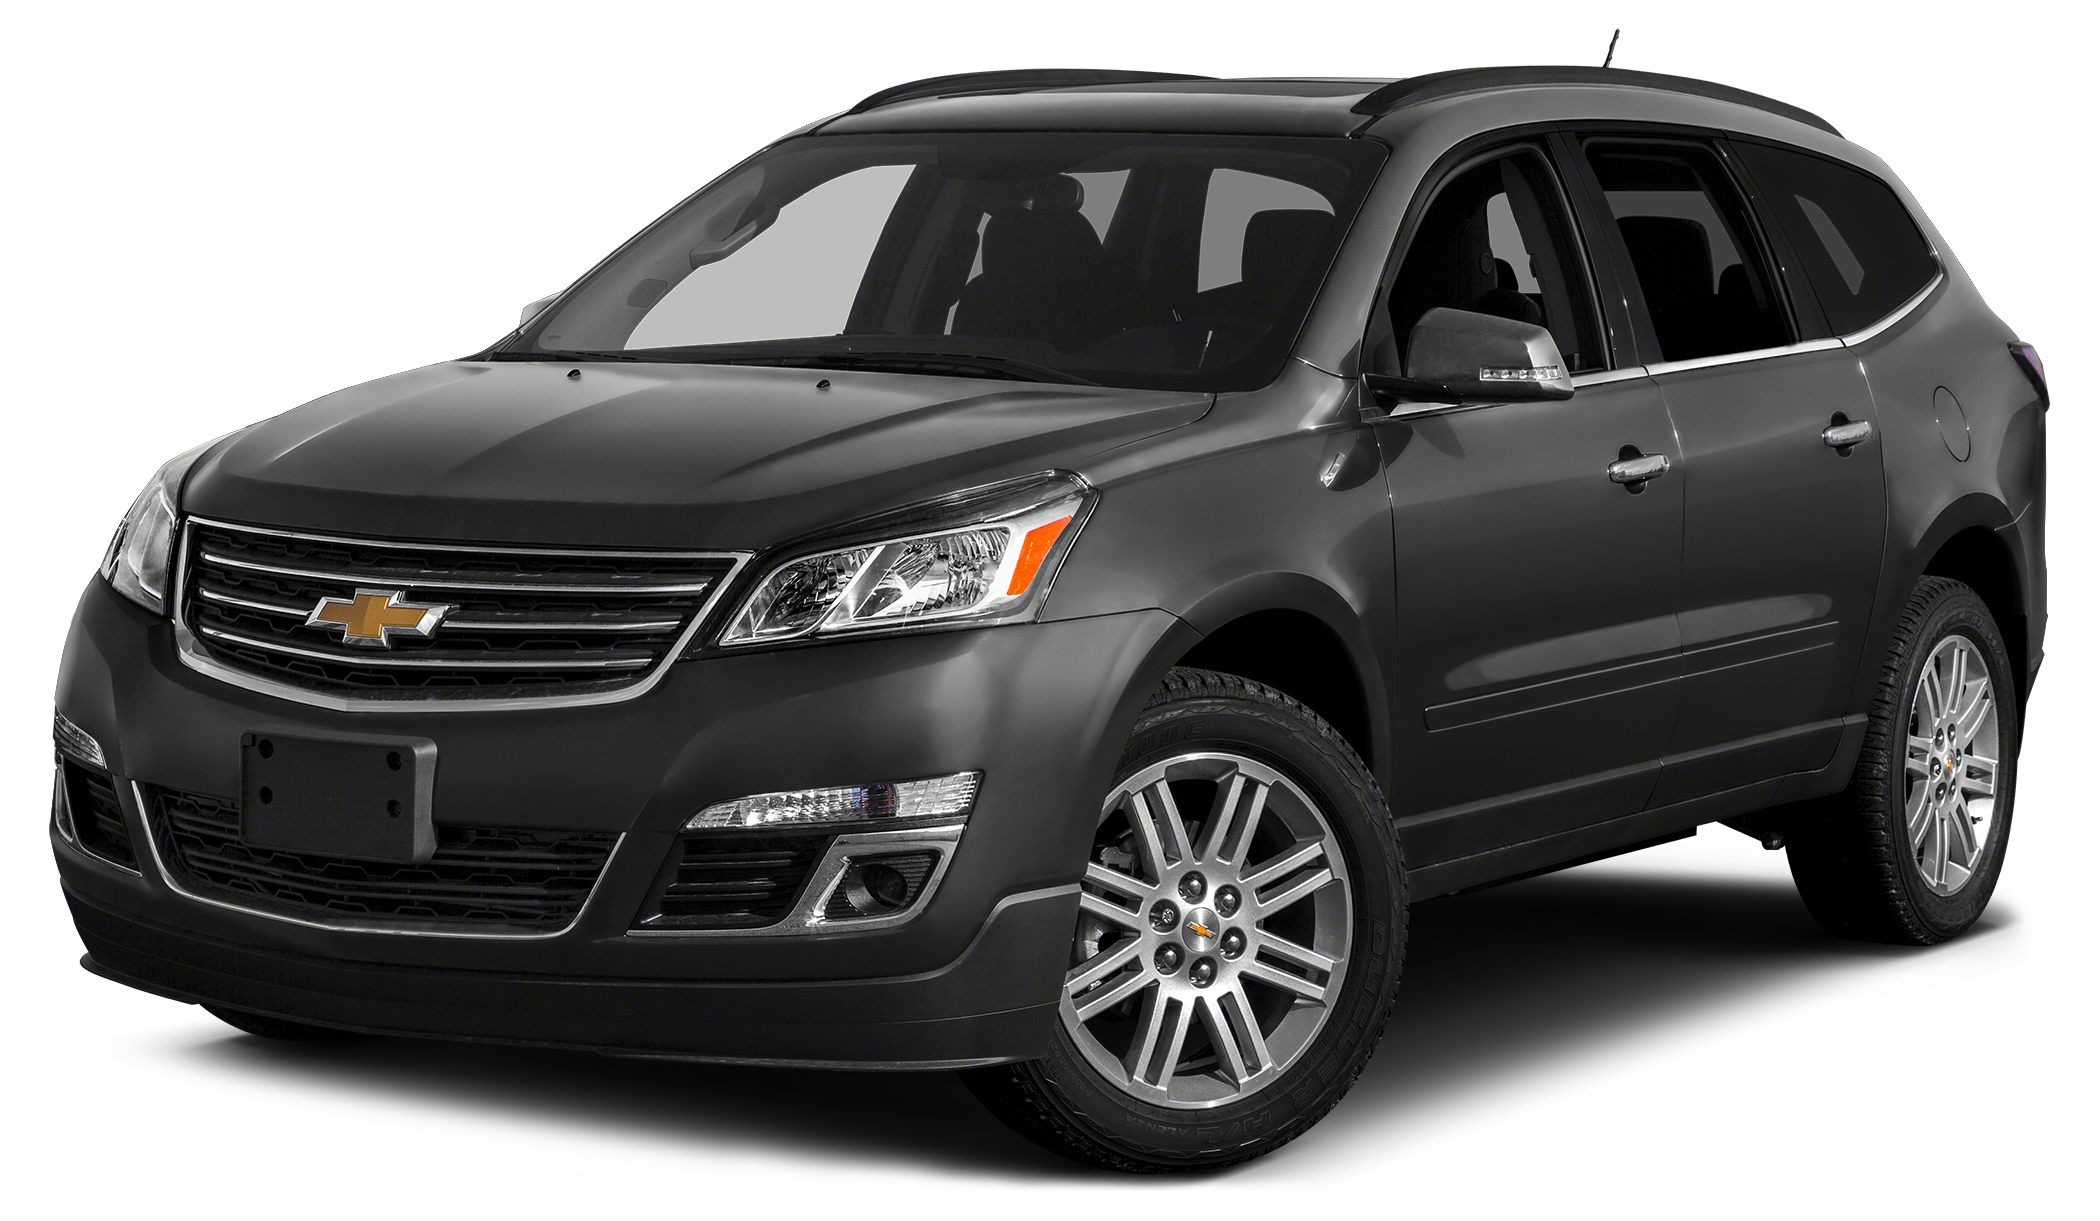 2015 Chevrolet Traverse LS YOU PAY LESS THAN WE PAY Special Internet only promotion on this brand